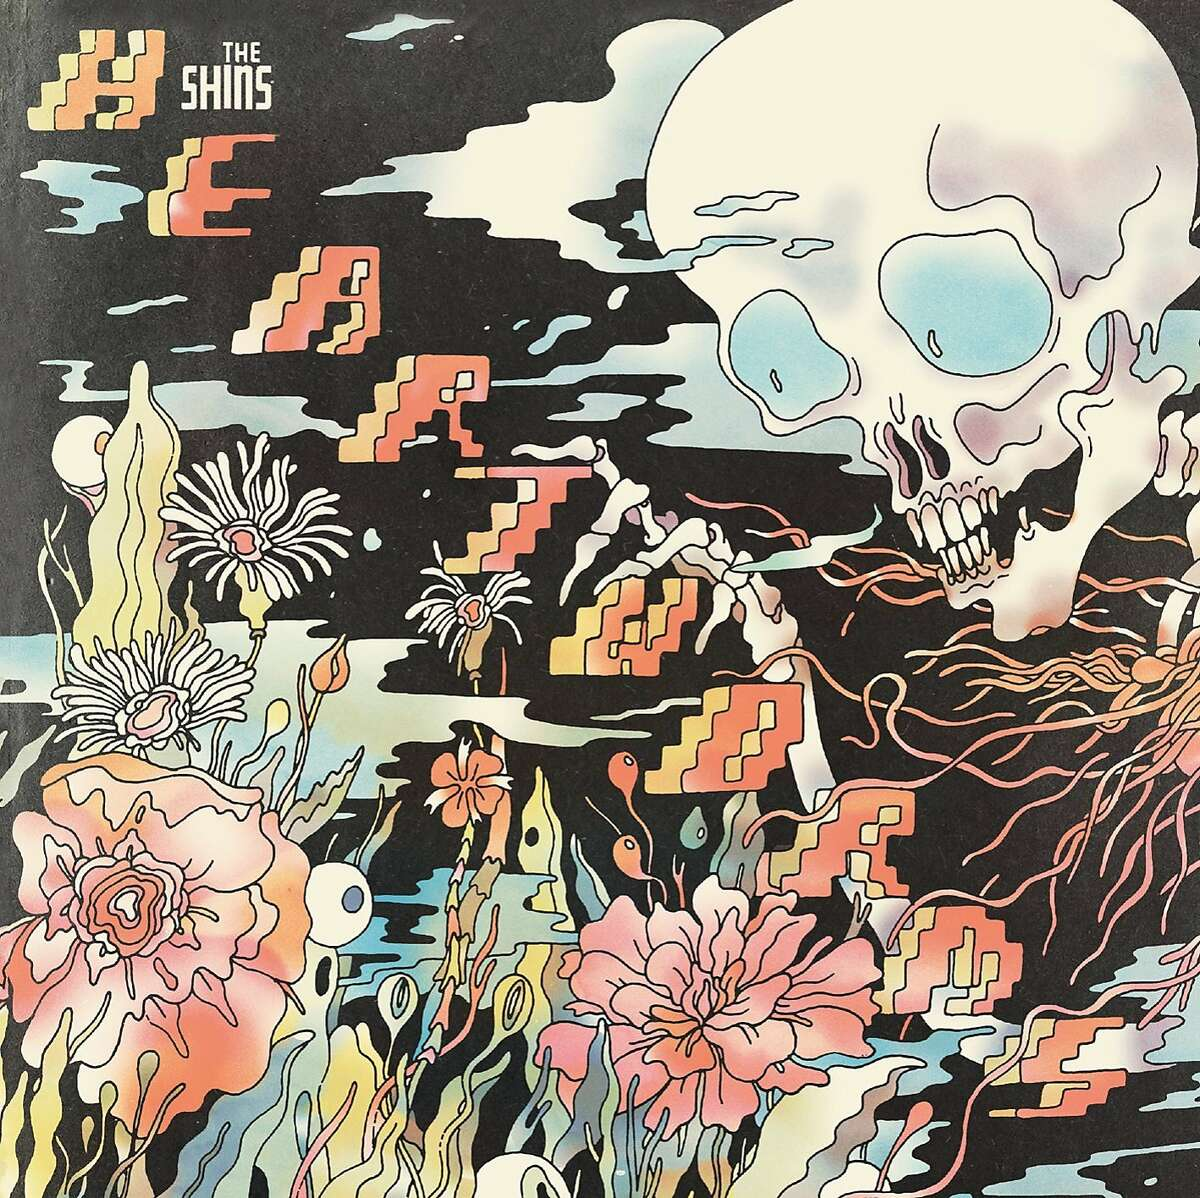 The Shins' latest release is 'Heartworms'